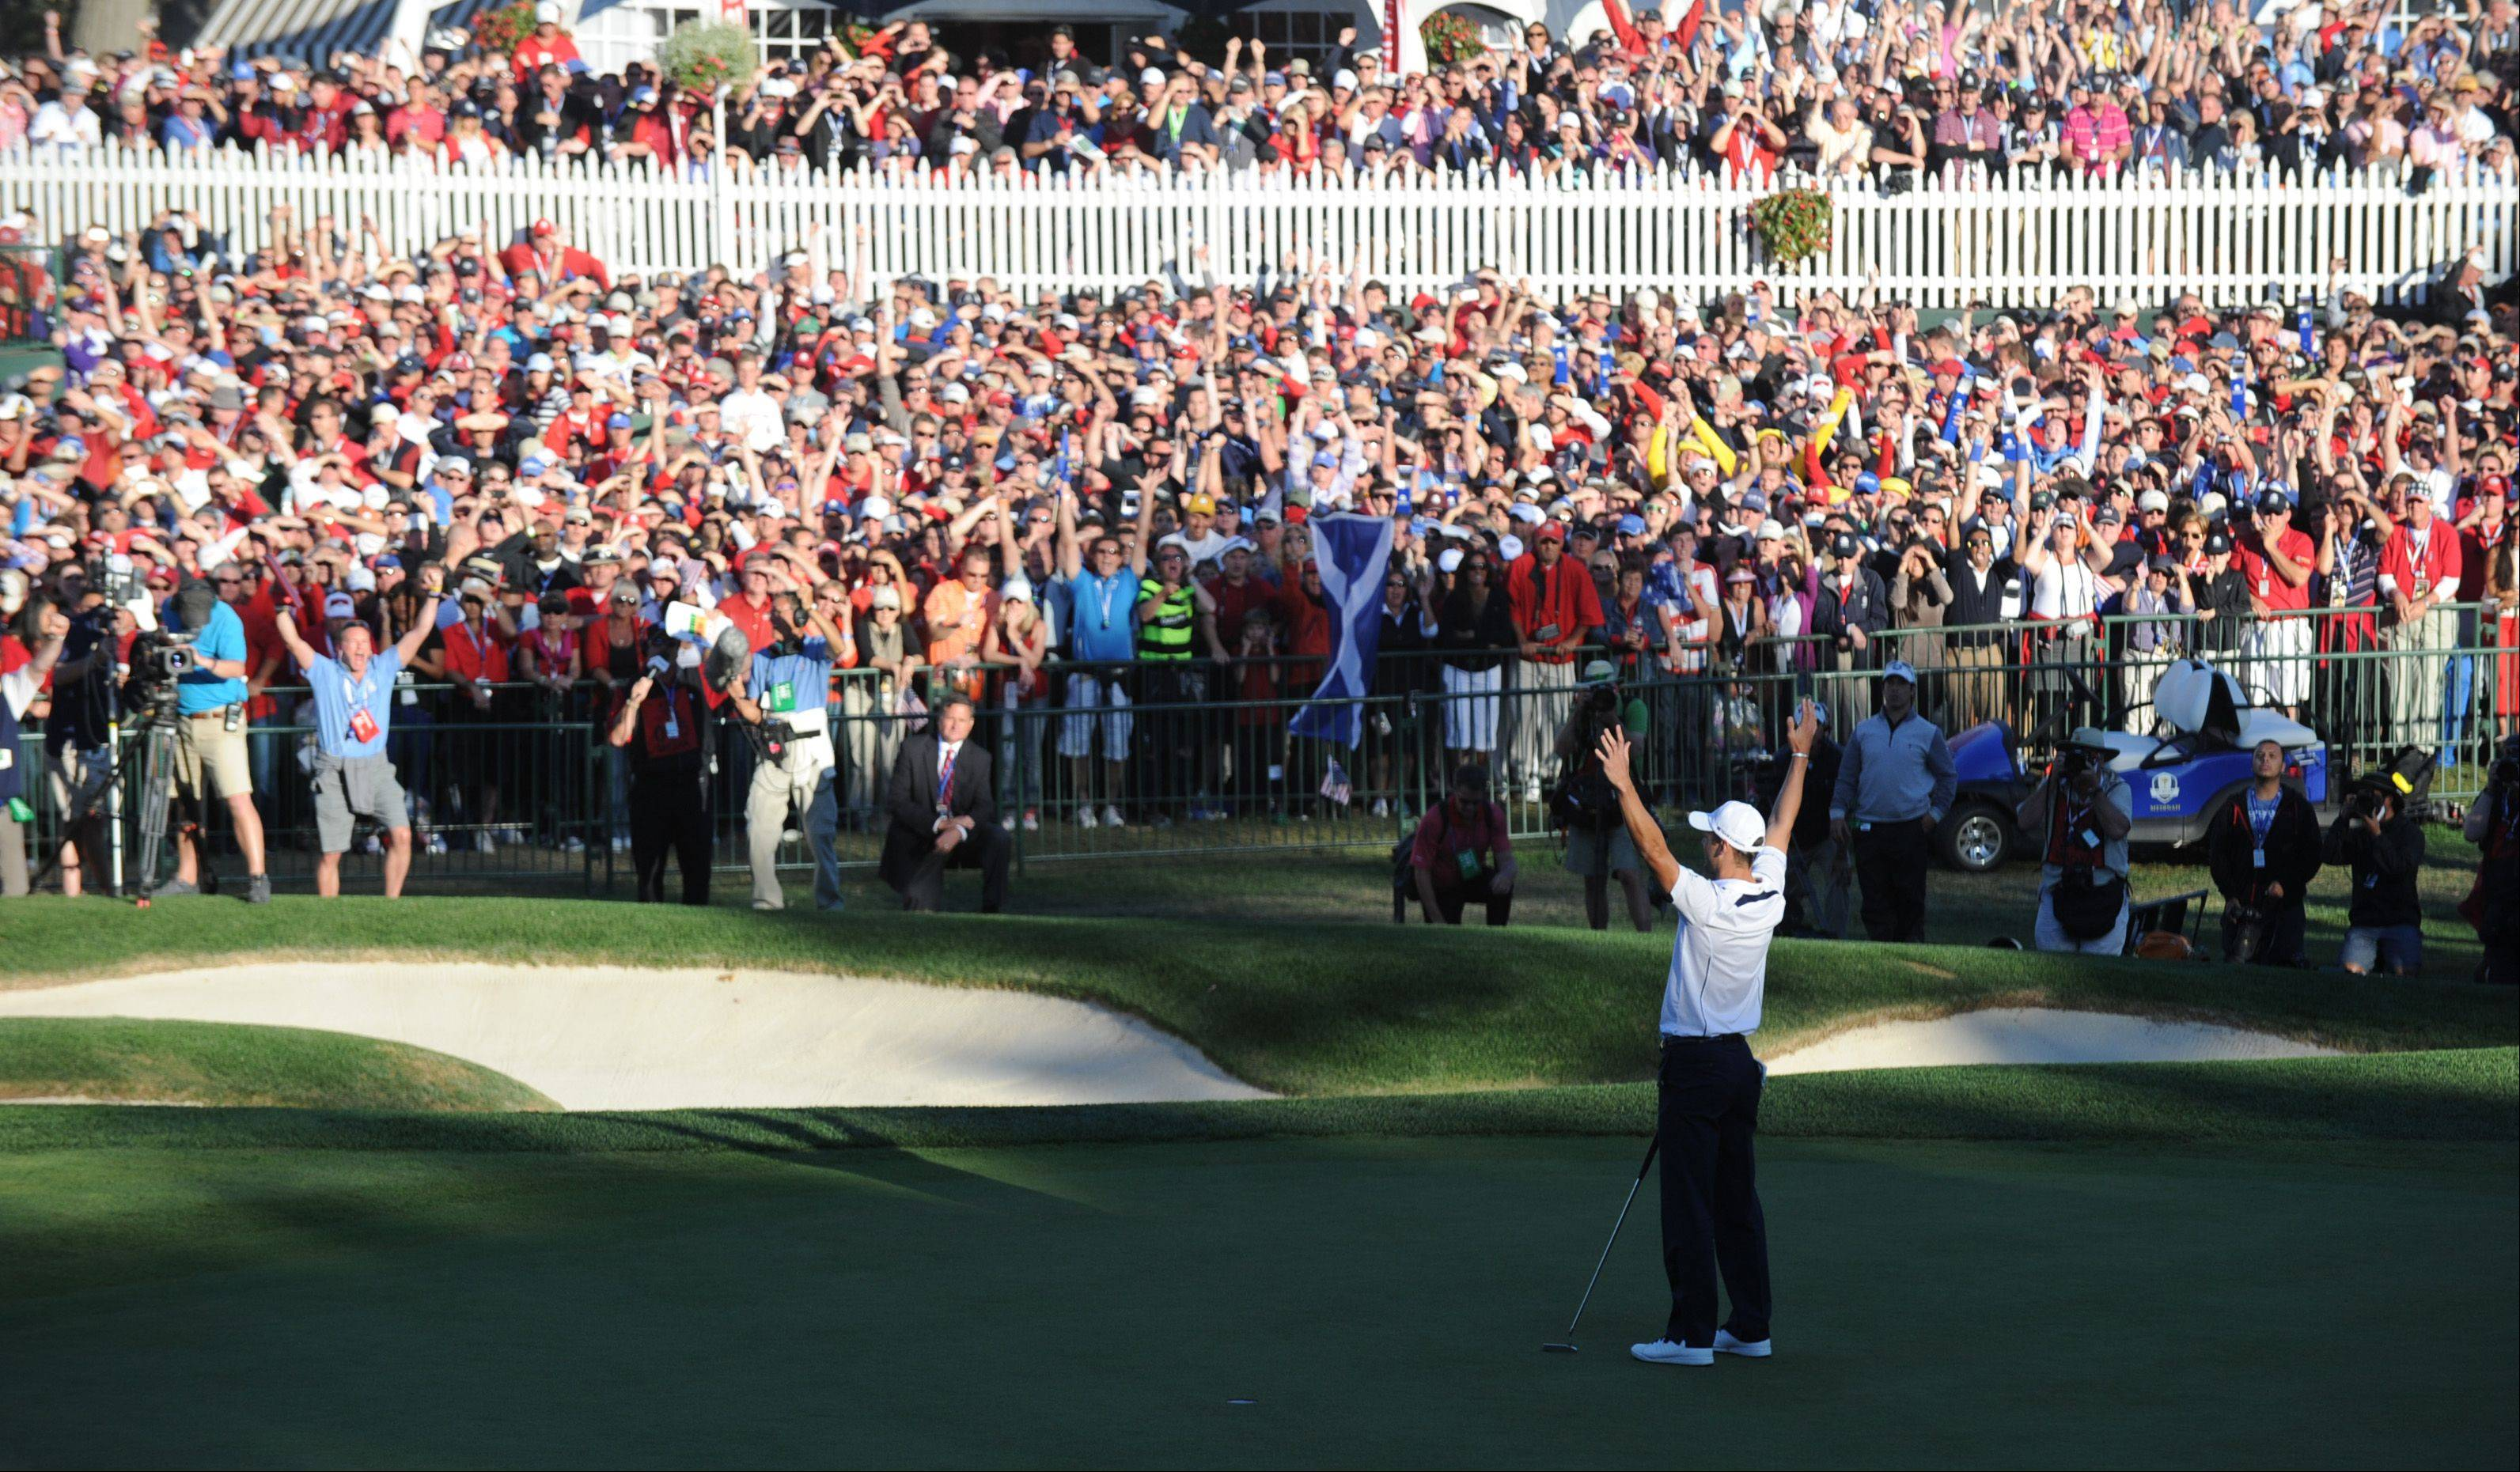 Martin Kaymer of Team Europe raises his arms in victory after his par putt on 18 clinched the 2012 Ryder Cup for Europe.